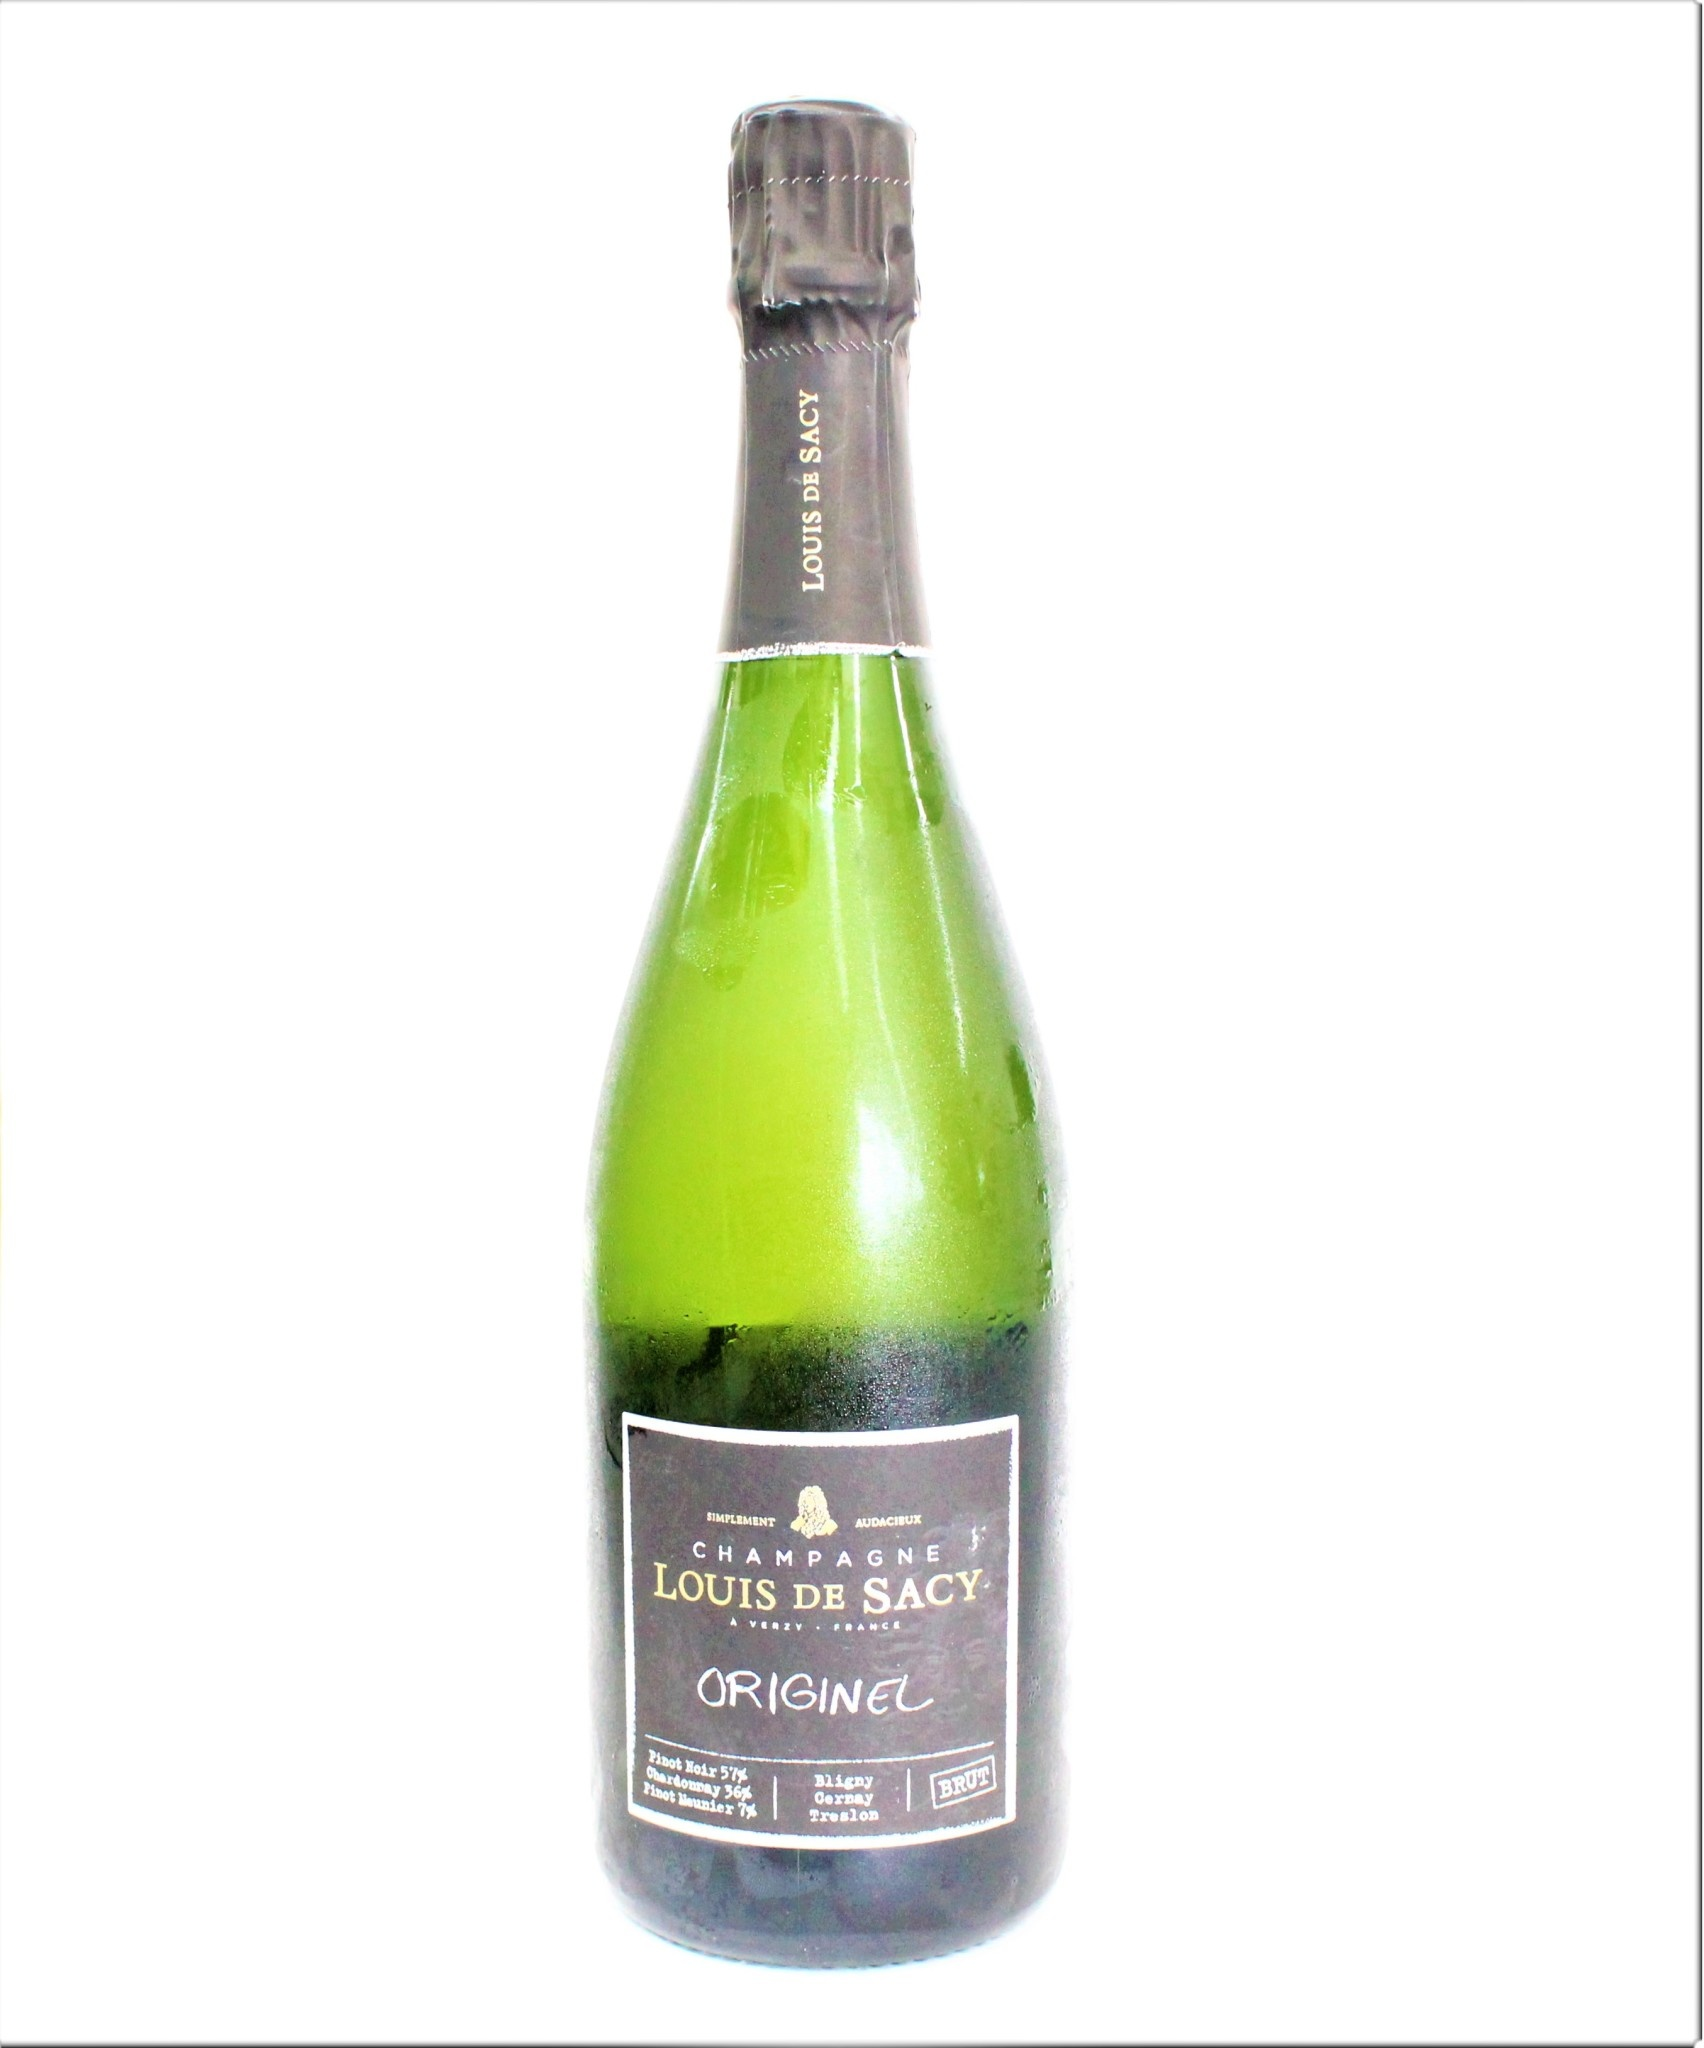 Champagne Louis de Sacy Originel Brut ABV: 12% 750 mL